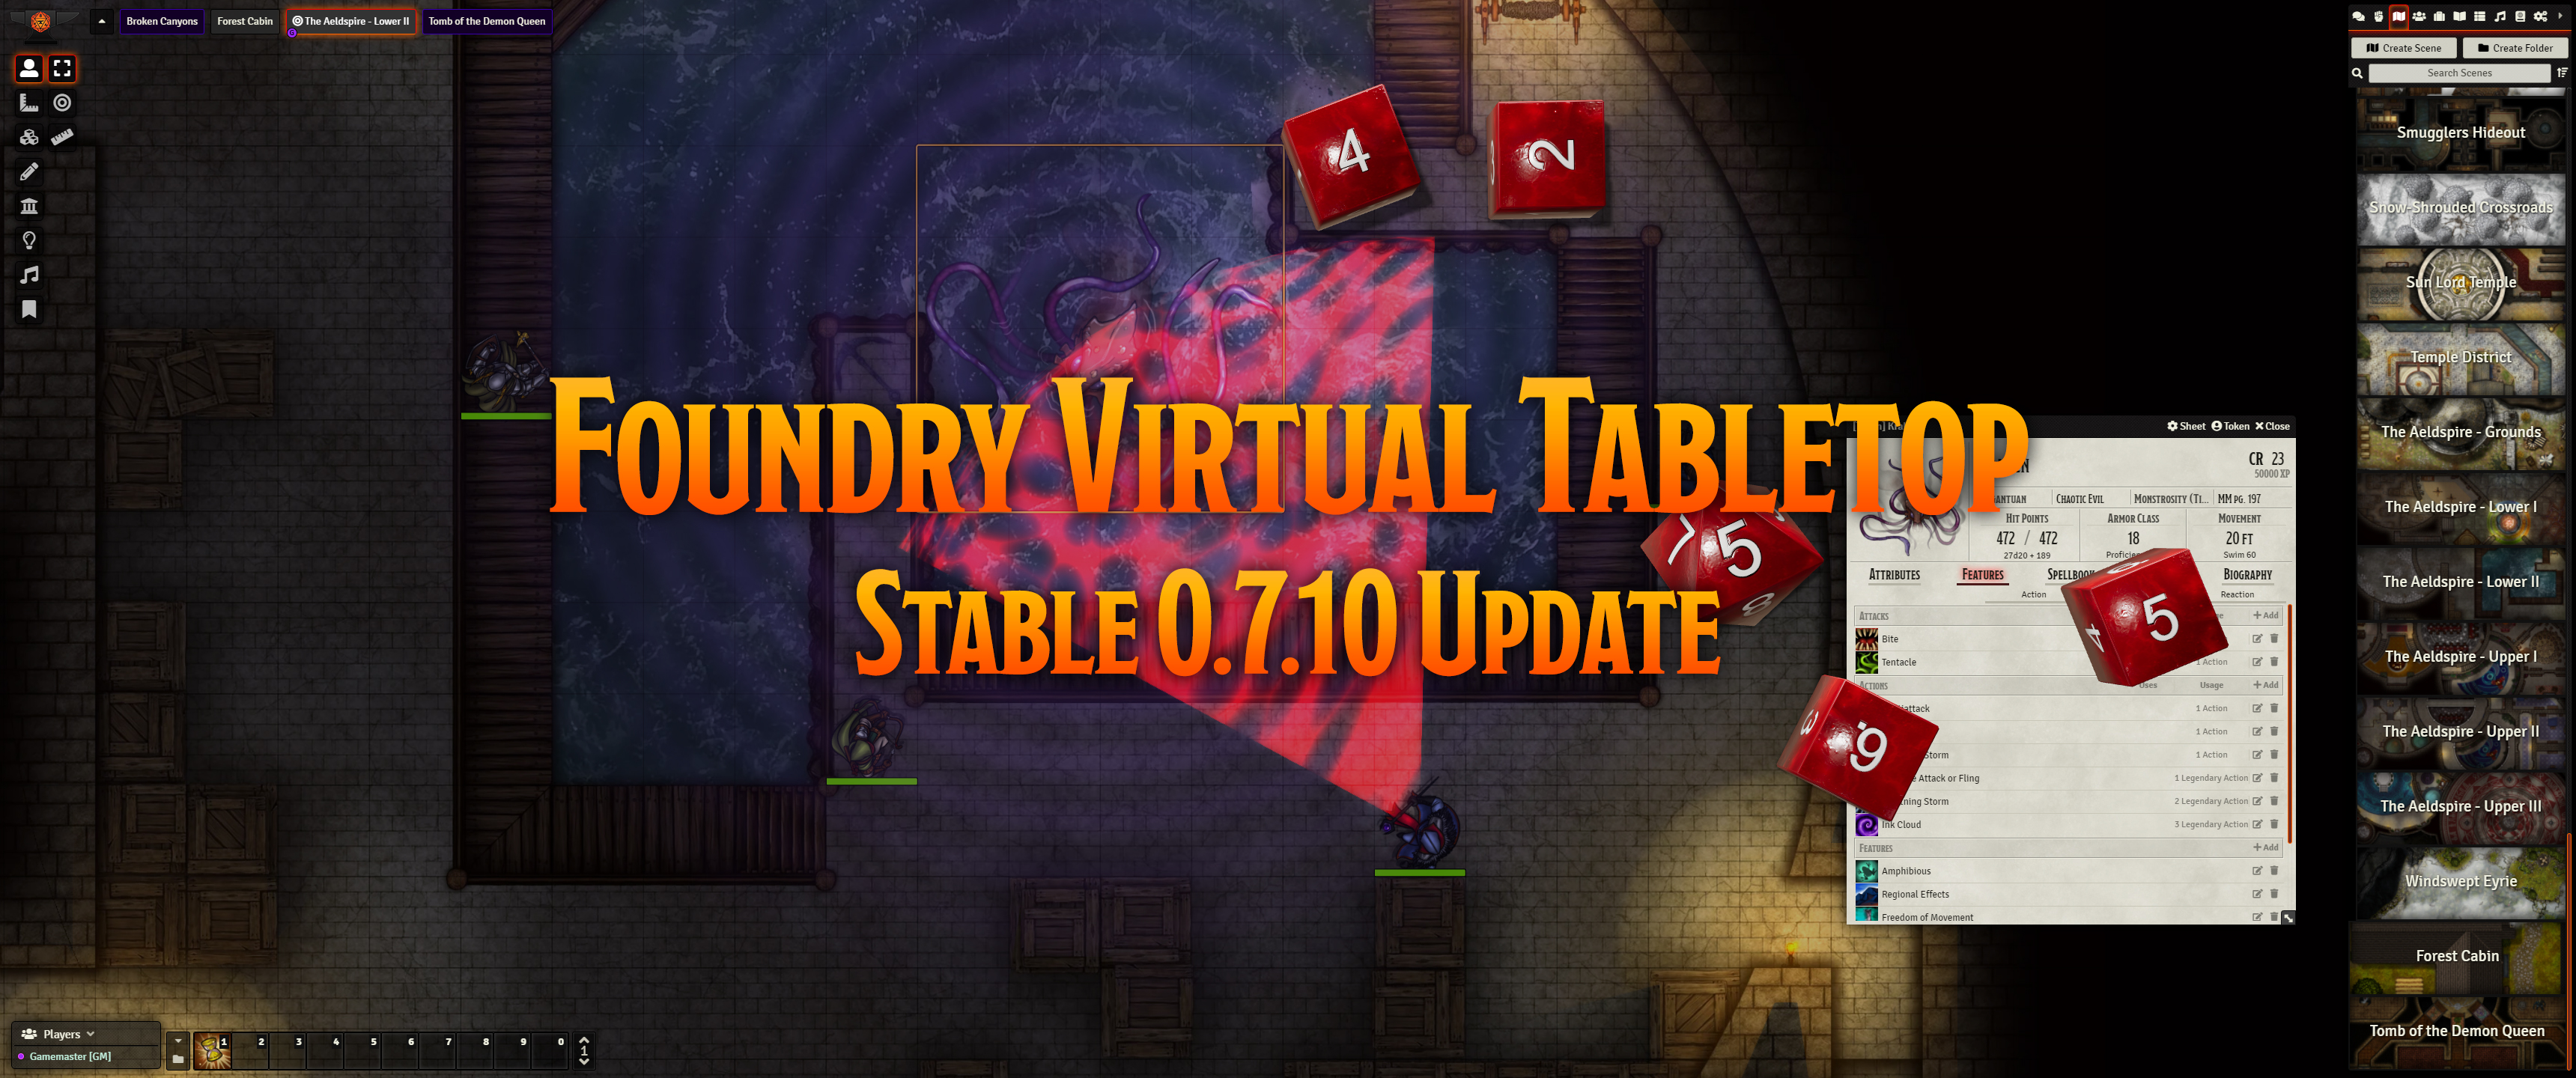 Release Notes for the Foundry Virtual Tabletop 0.7.10 version